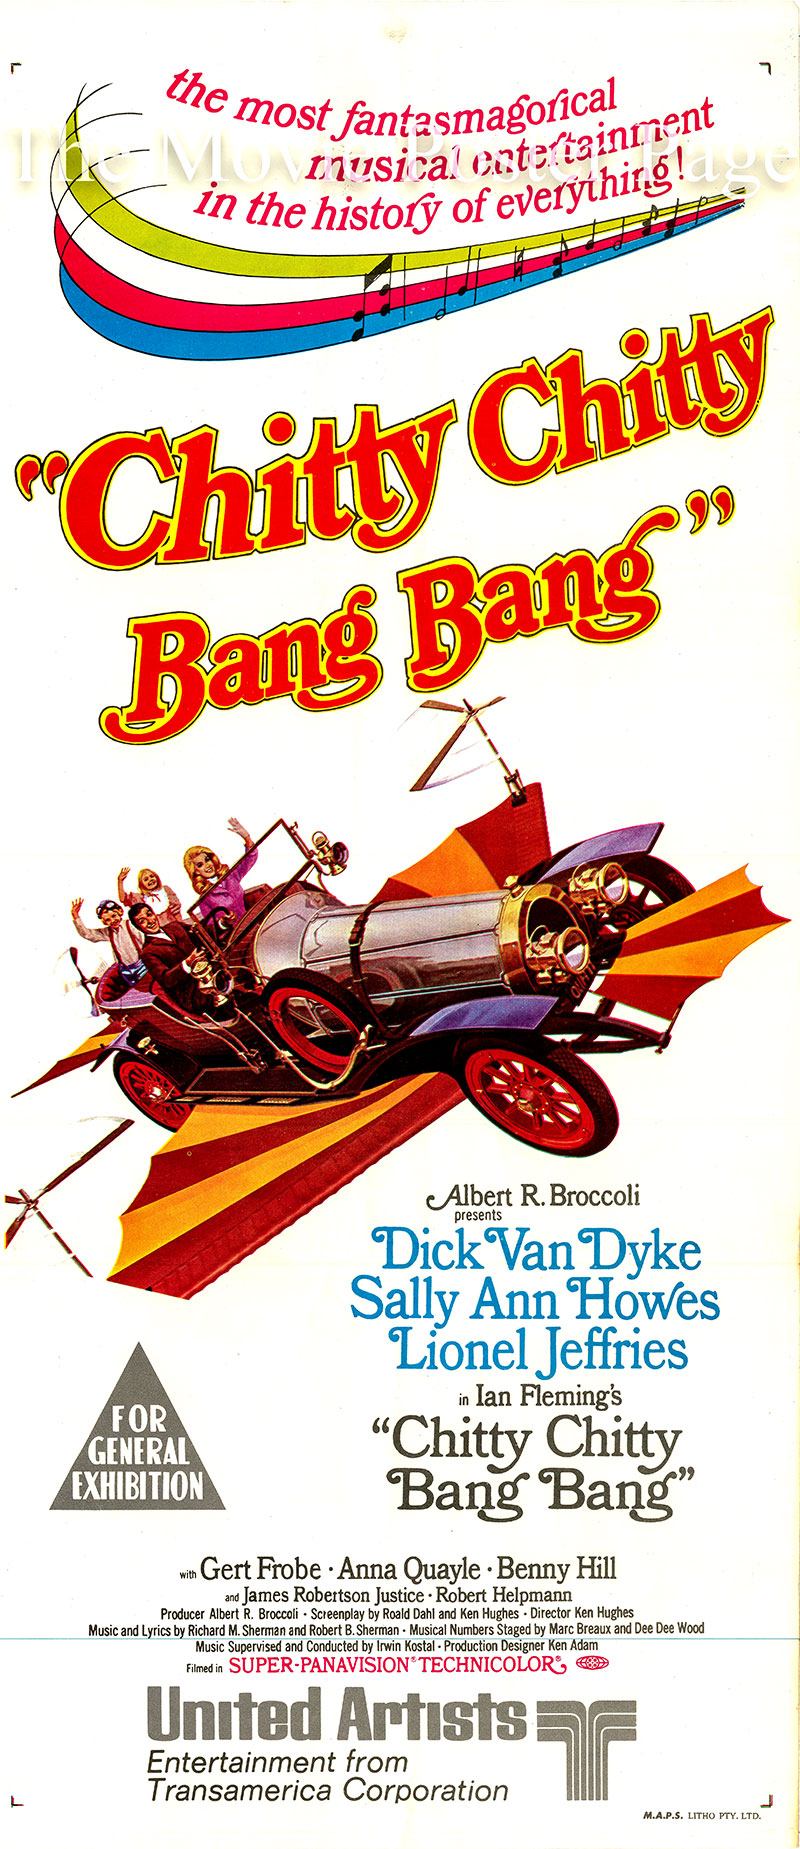 Pictured is an Italian day bill poster for the 1968 Ken Hughes film Chitty Chitty Bang Bang starring Dick Van Dyke as Caractacus Potts.